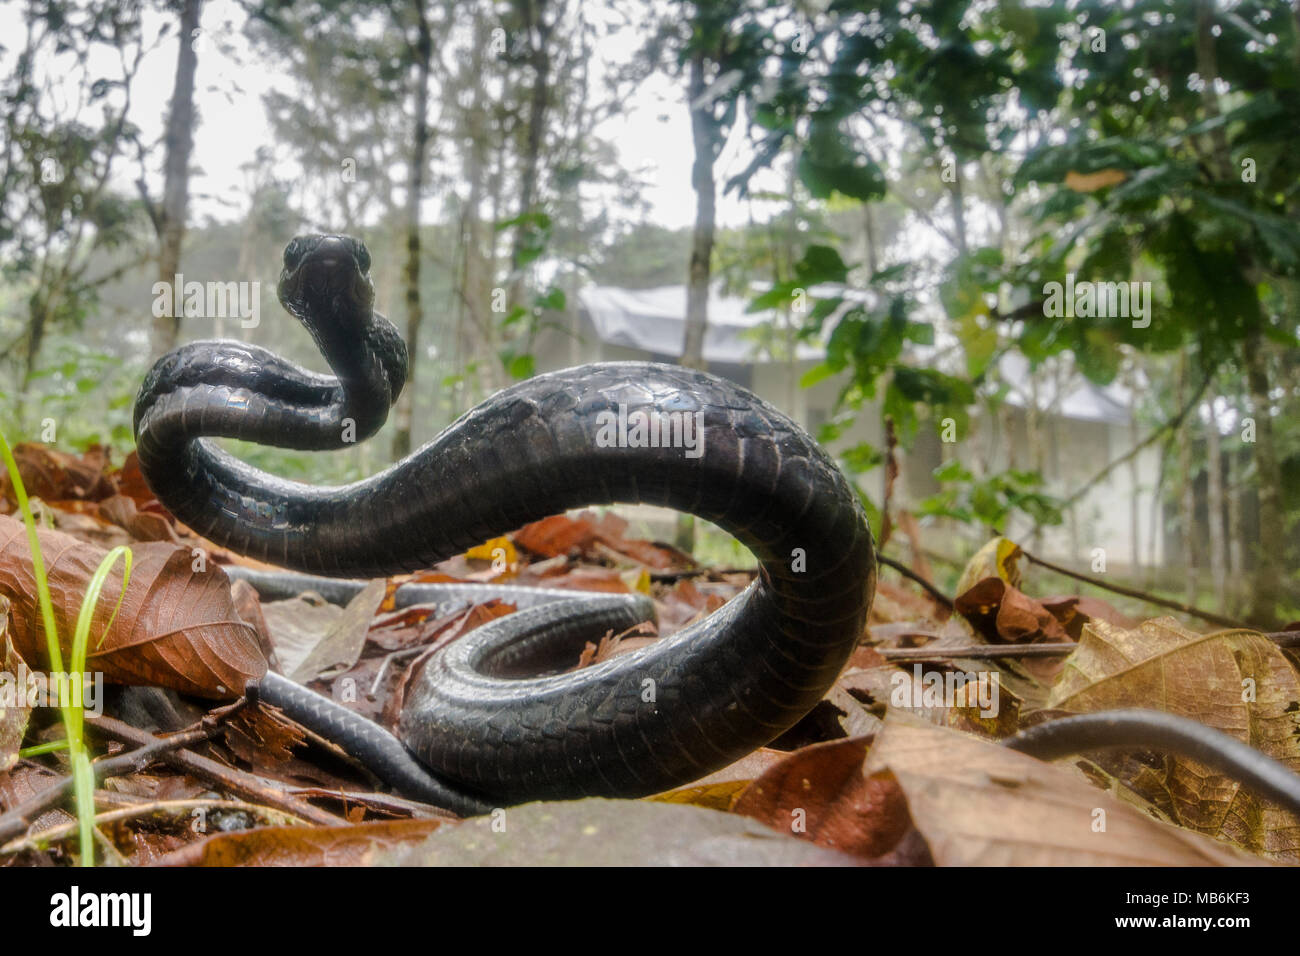 Angry Chonta snake (Chironius grandisquamus) showing that it is unhappy with the attention and acting aggressively to scare the photographer. - Stock Image